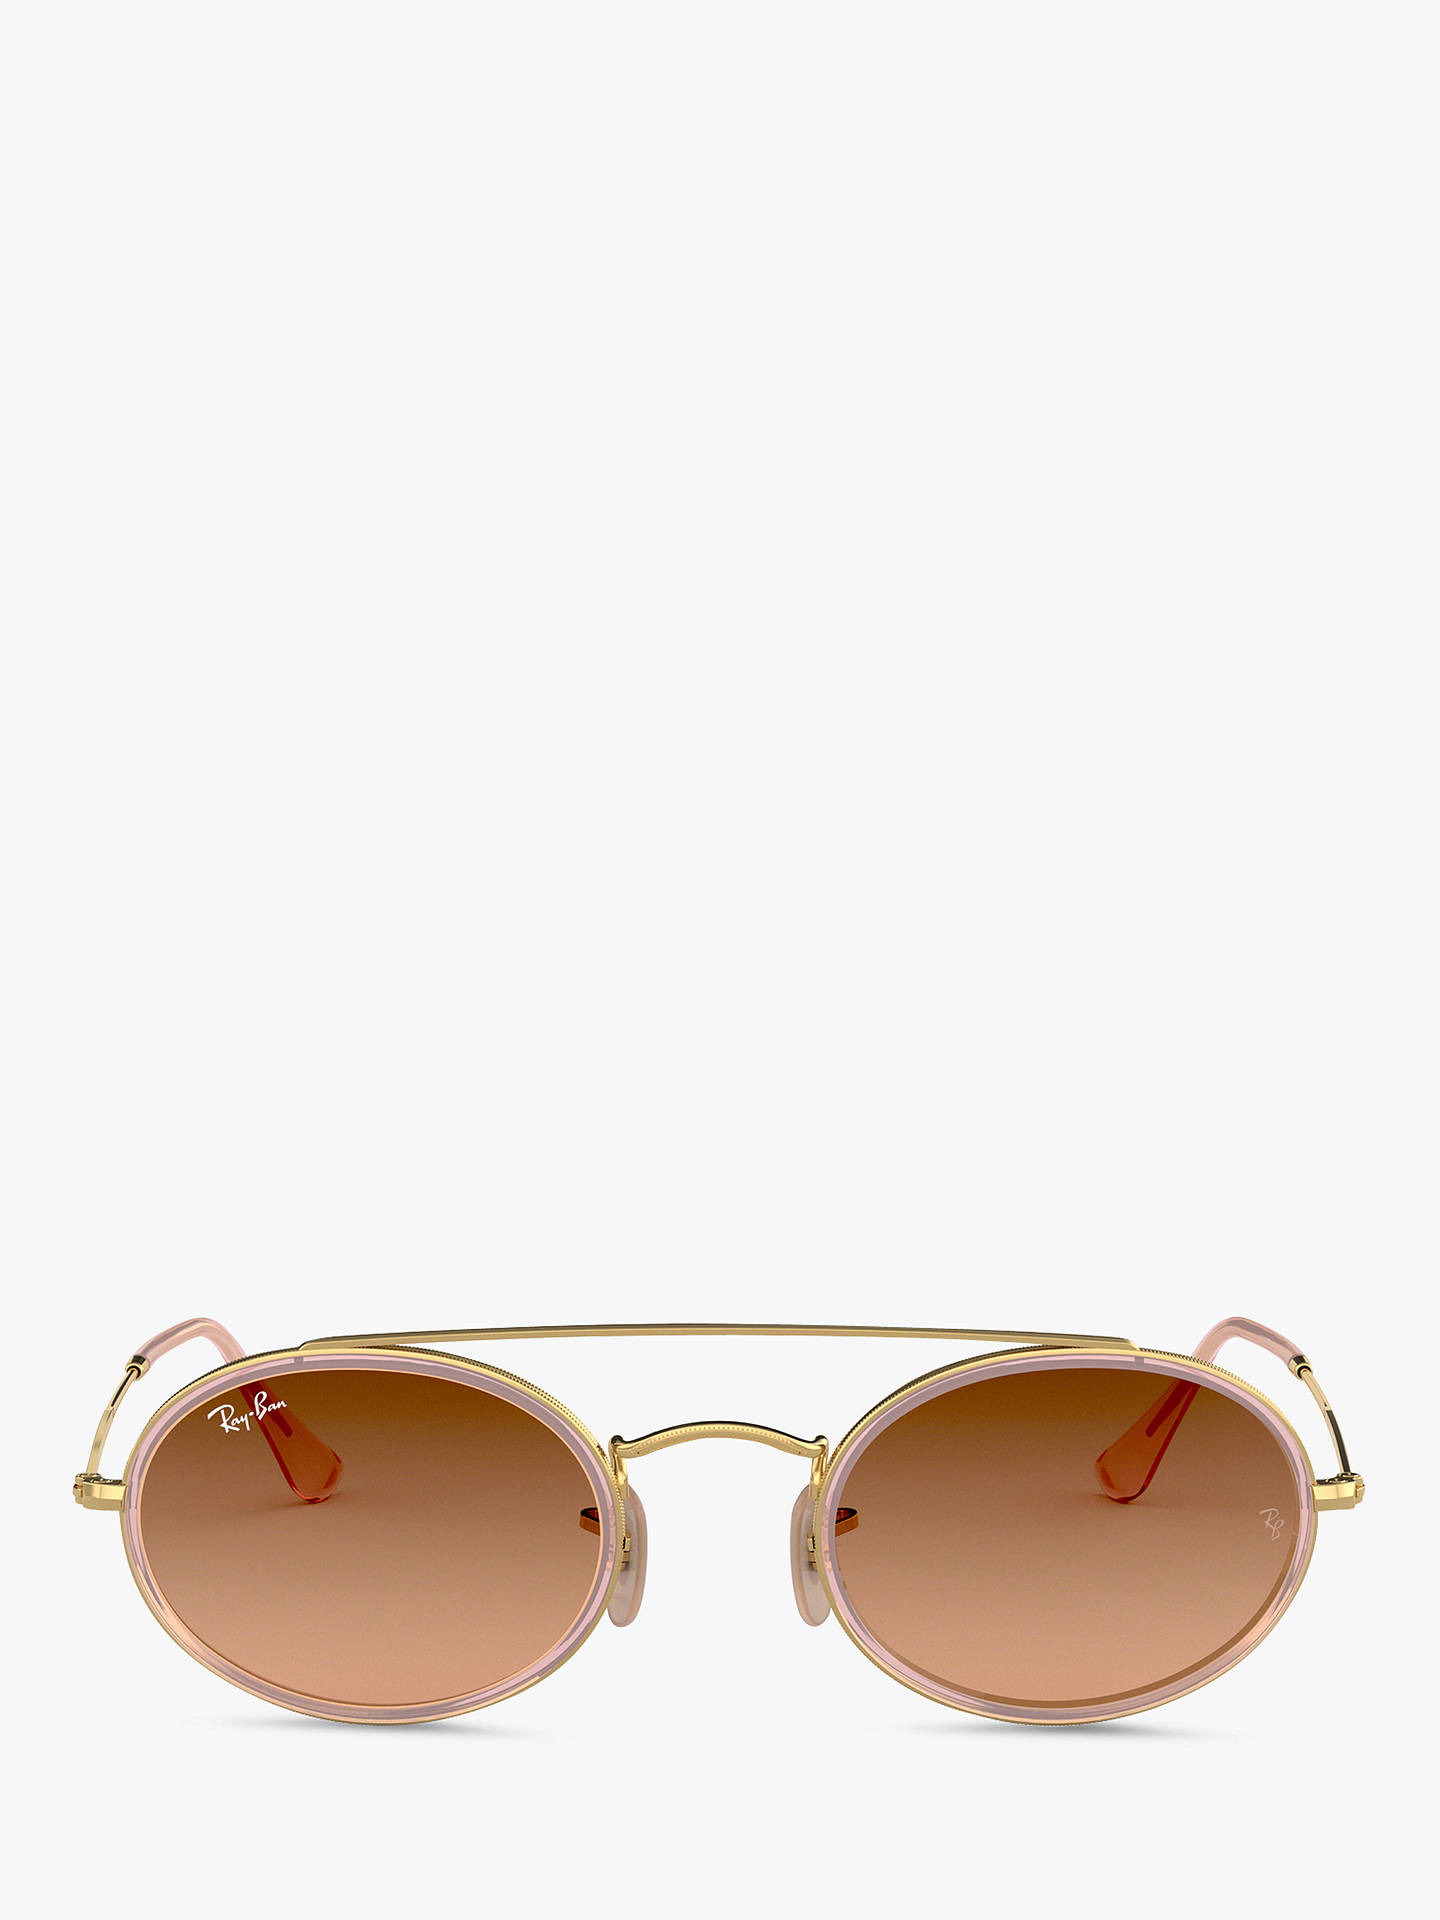 BuyRay-Ban RB3847N Women's Oval Sunglasses, Gold/Pink Gradient Online at johnlewis.com